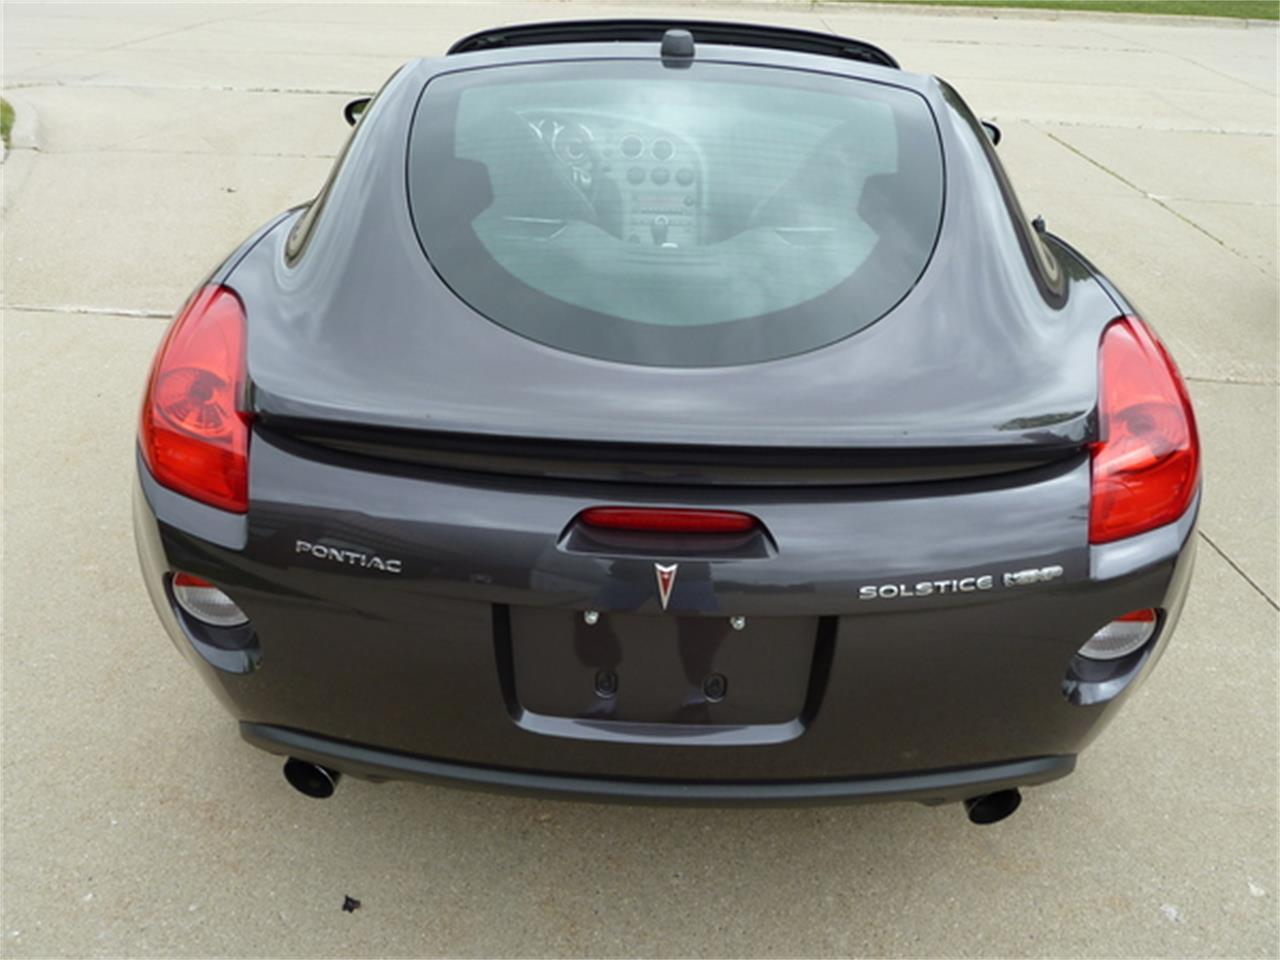 Large Picture of '10 Pontiac Solstice located in Fort Myers/ Macomb, MI Florida Offered by More Muscle Cars - JXMD